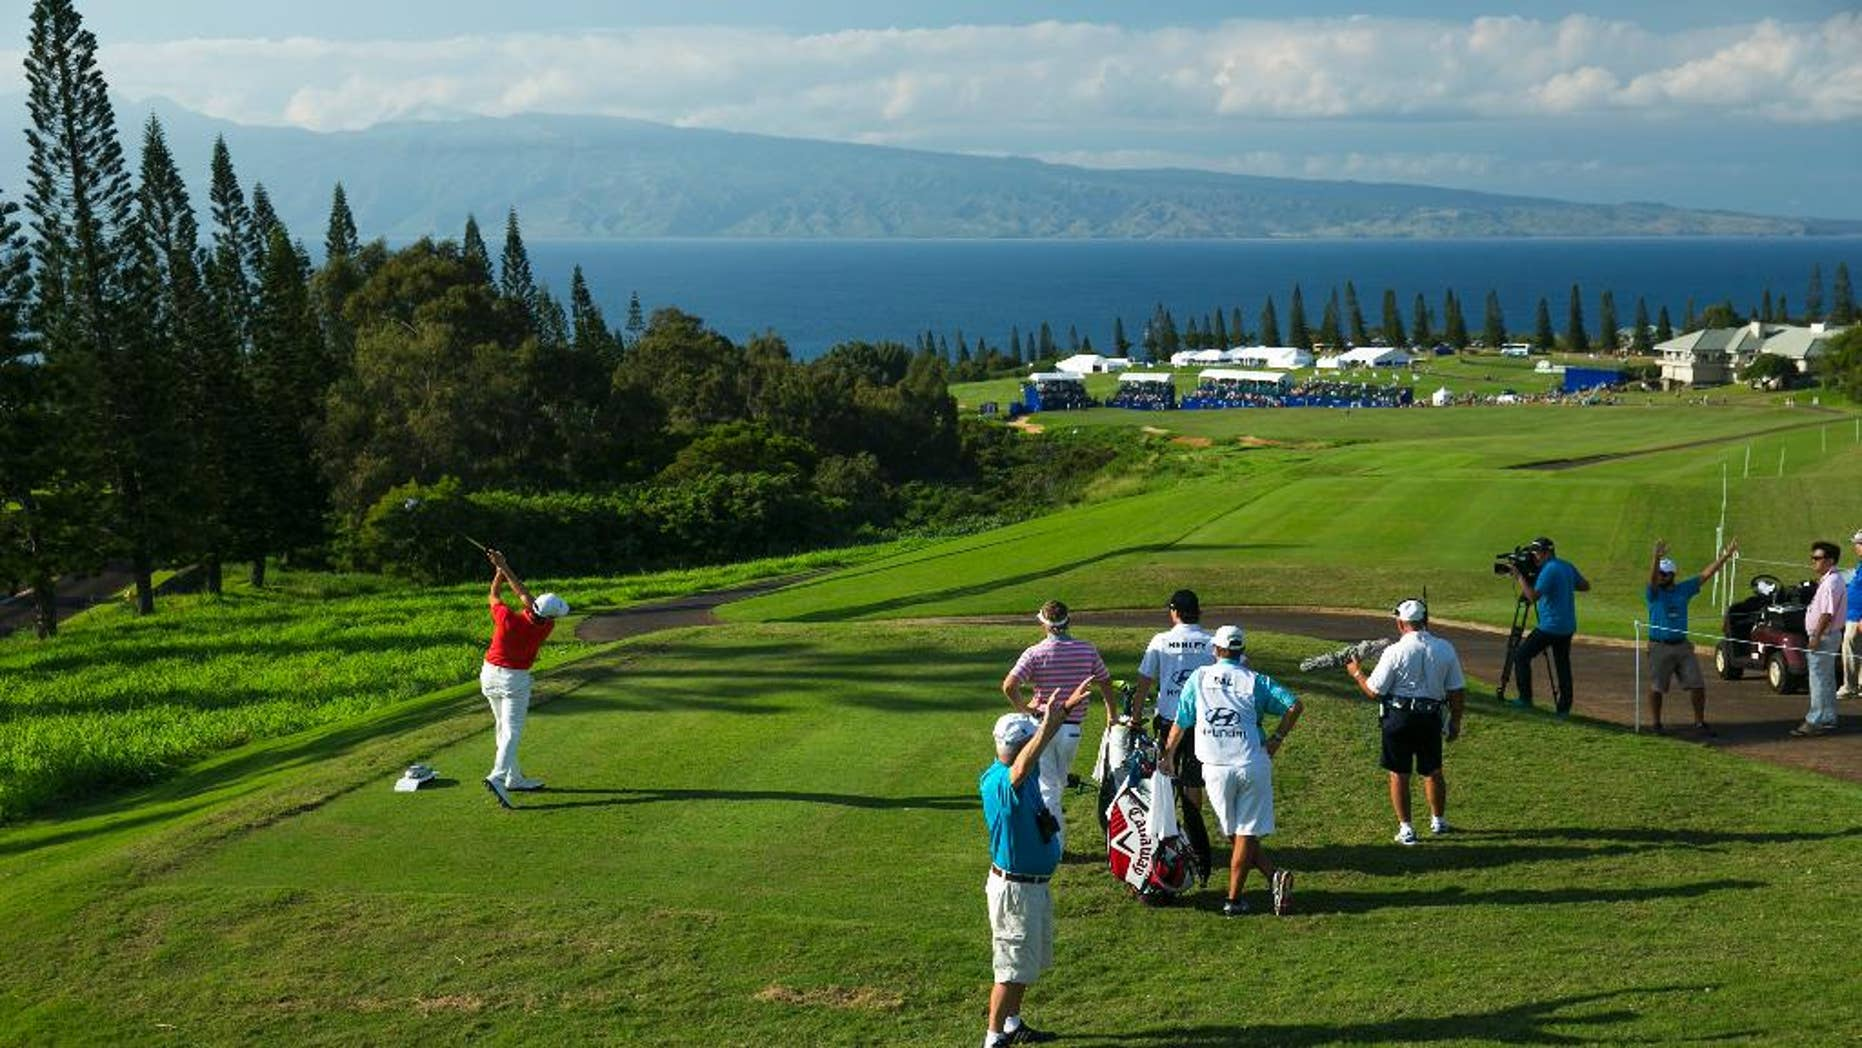 Sang-Moon Bae, of South Korea, drives on the 18th tee during the third round of the Tournament of Champions golf tournament, Sunday, Jan. 11, 2015, in Kapalua, Hawaii.  (AP Photo/Marco Garcia)